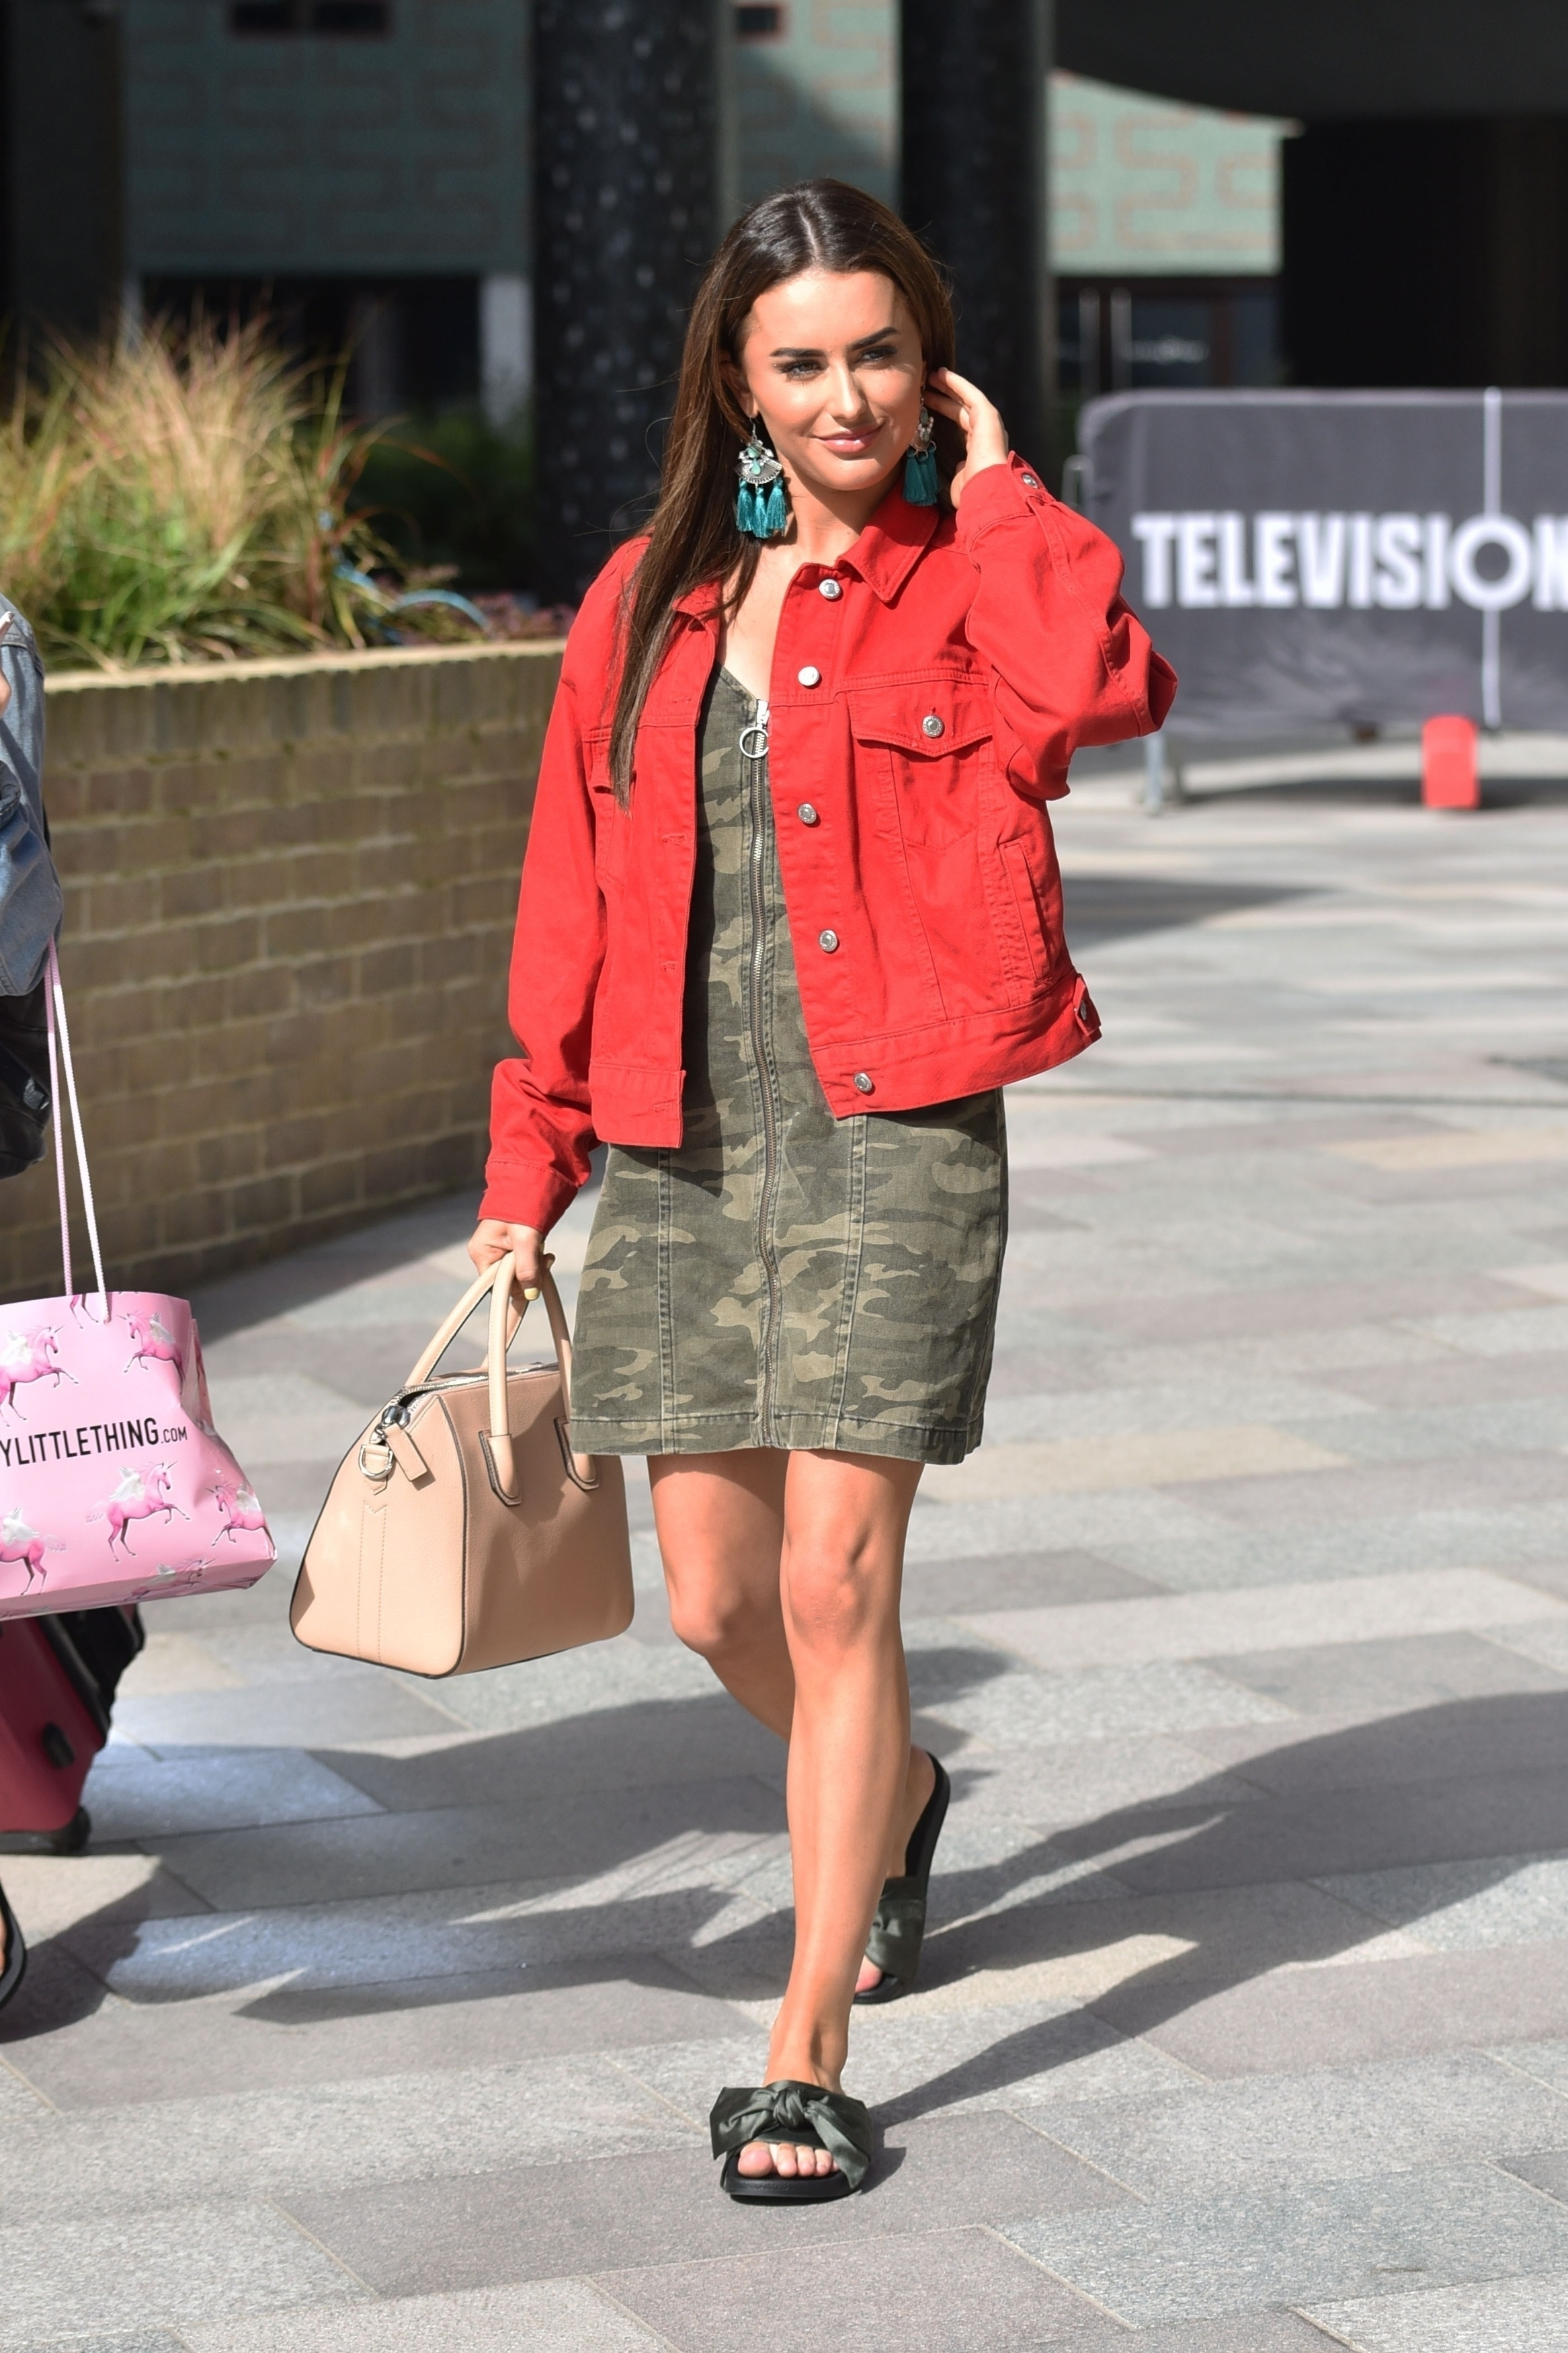 Feet Amber Davies naked (12 photos), Topless, Fappening, Feet, swimsuit 2015